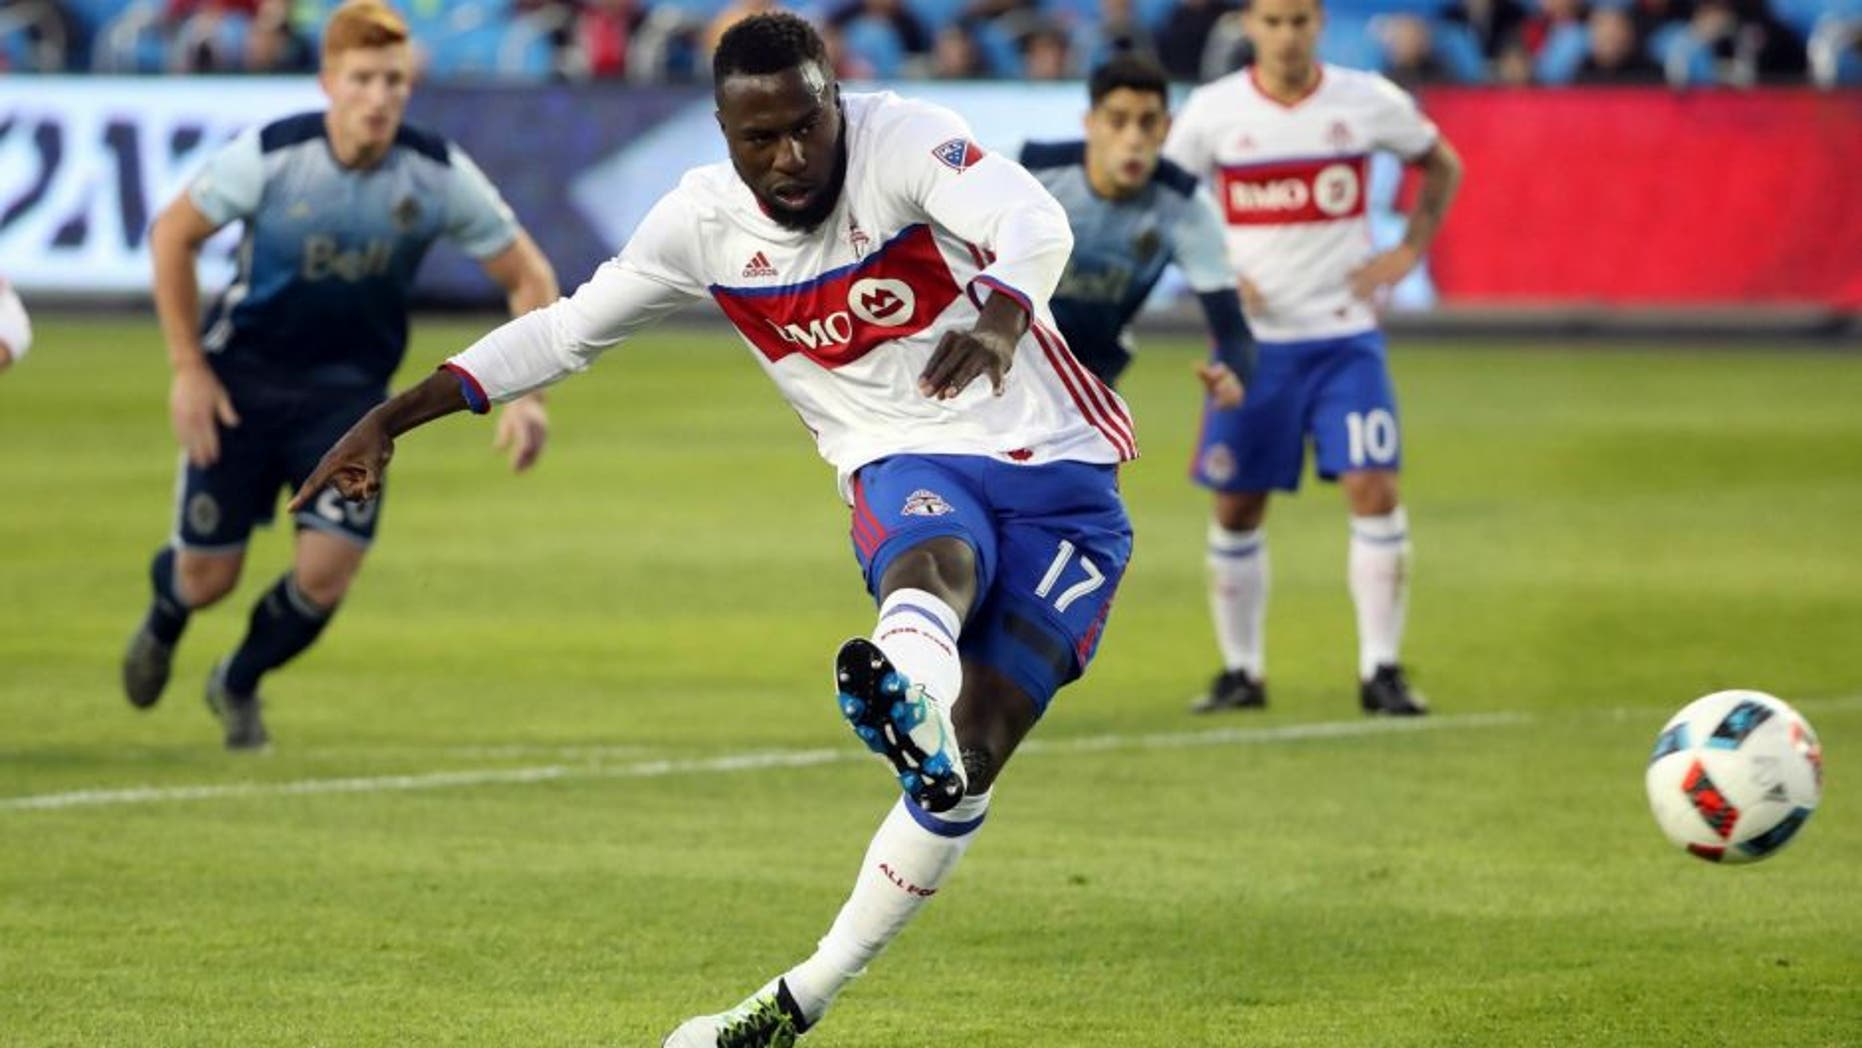 May 14, 2016; Toronto, Ontario, CAN; Toronto FC forward Jozy Altidore (17) fails to convert on a penalty kick against the Vancouver Whitecaps at BMO Field. The Whitecaps beat the FC 4-3. Mandatory Credit: Tom Szczerbowski-USA TODAY Sports